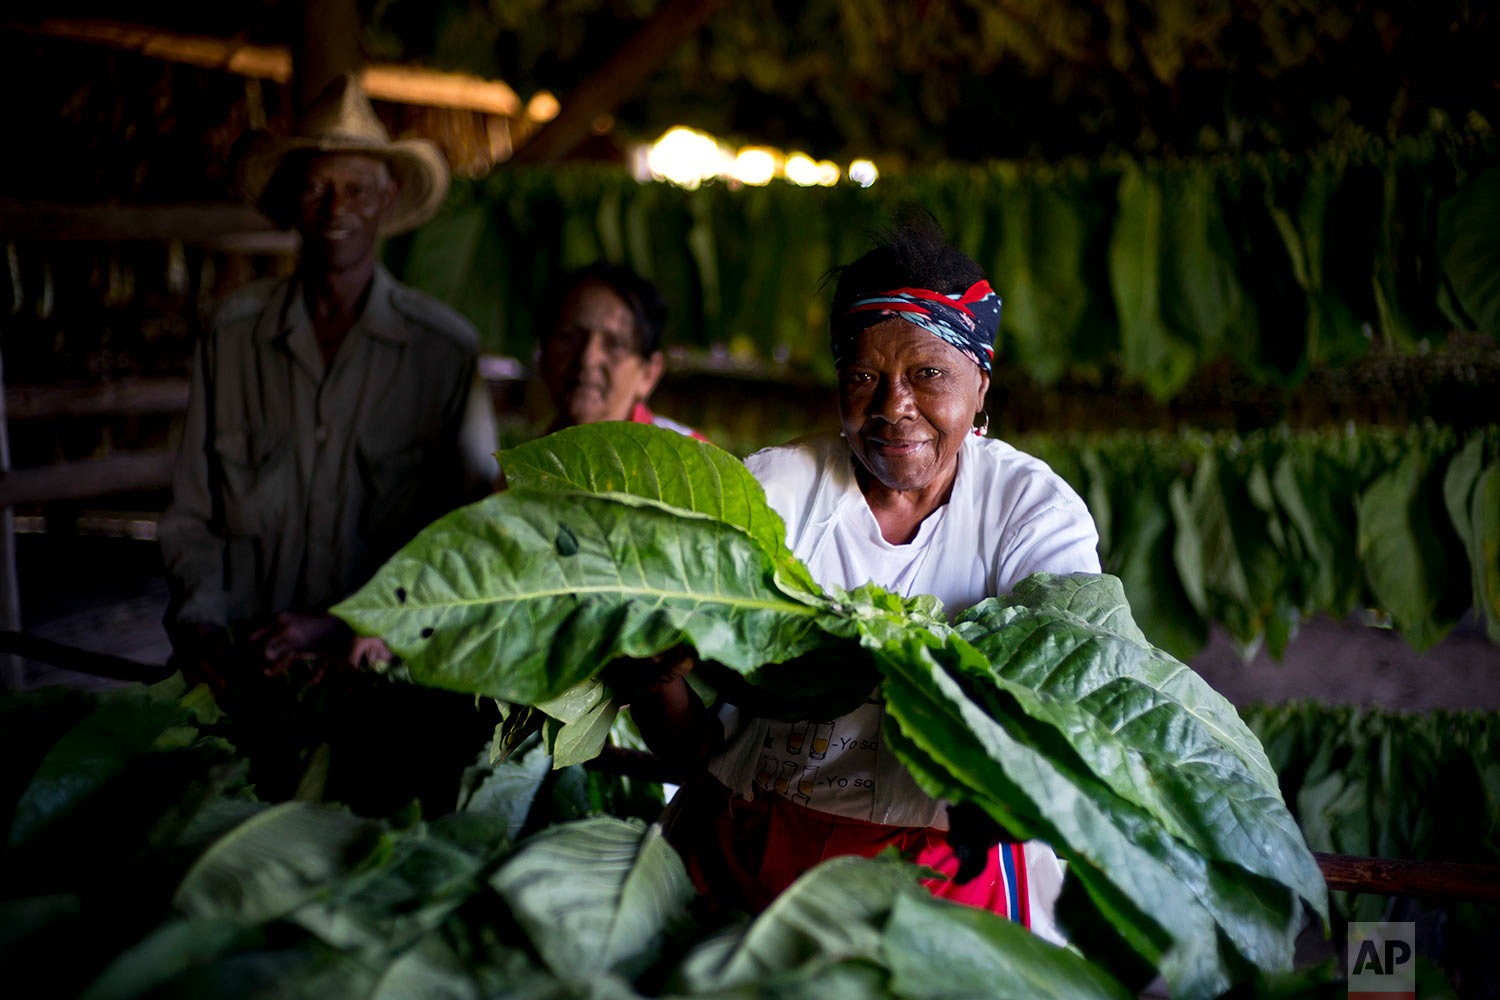 In this Feb. 27, 2018 photo, 75-year-old Delma Mendivez Martinez poses with freshly harvested tobacco leaves ready for their first drying, at a warehouse of the Martinez tobacco farm in Cuba's western province of Pinar del Rio. (AP Photo/Ramon Espinosa)